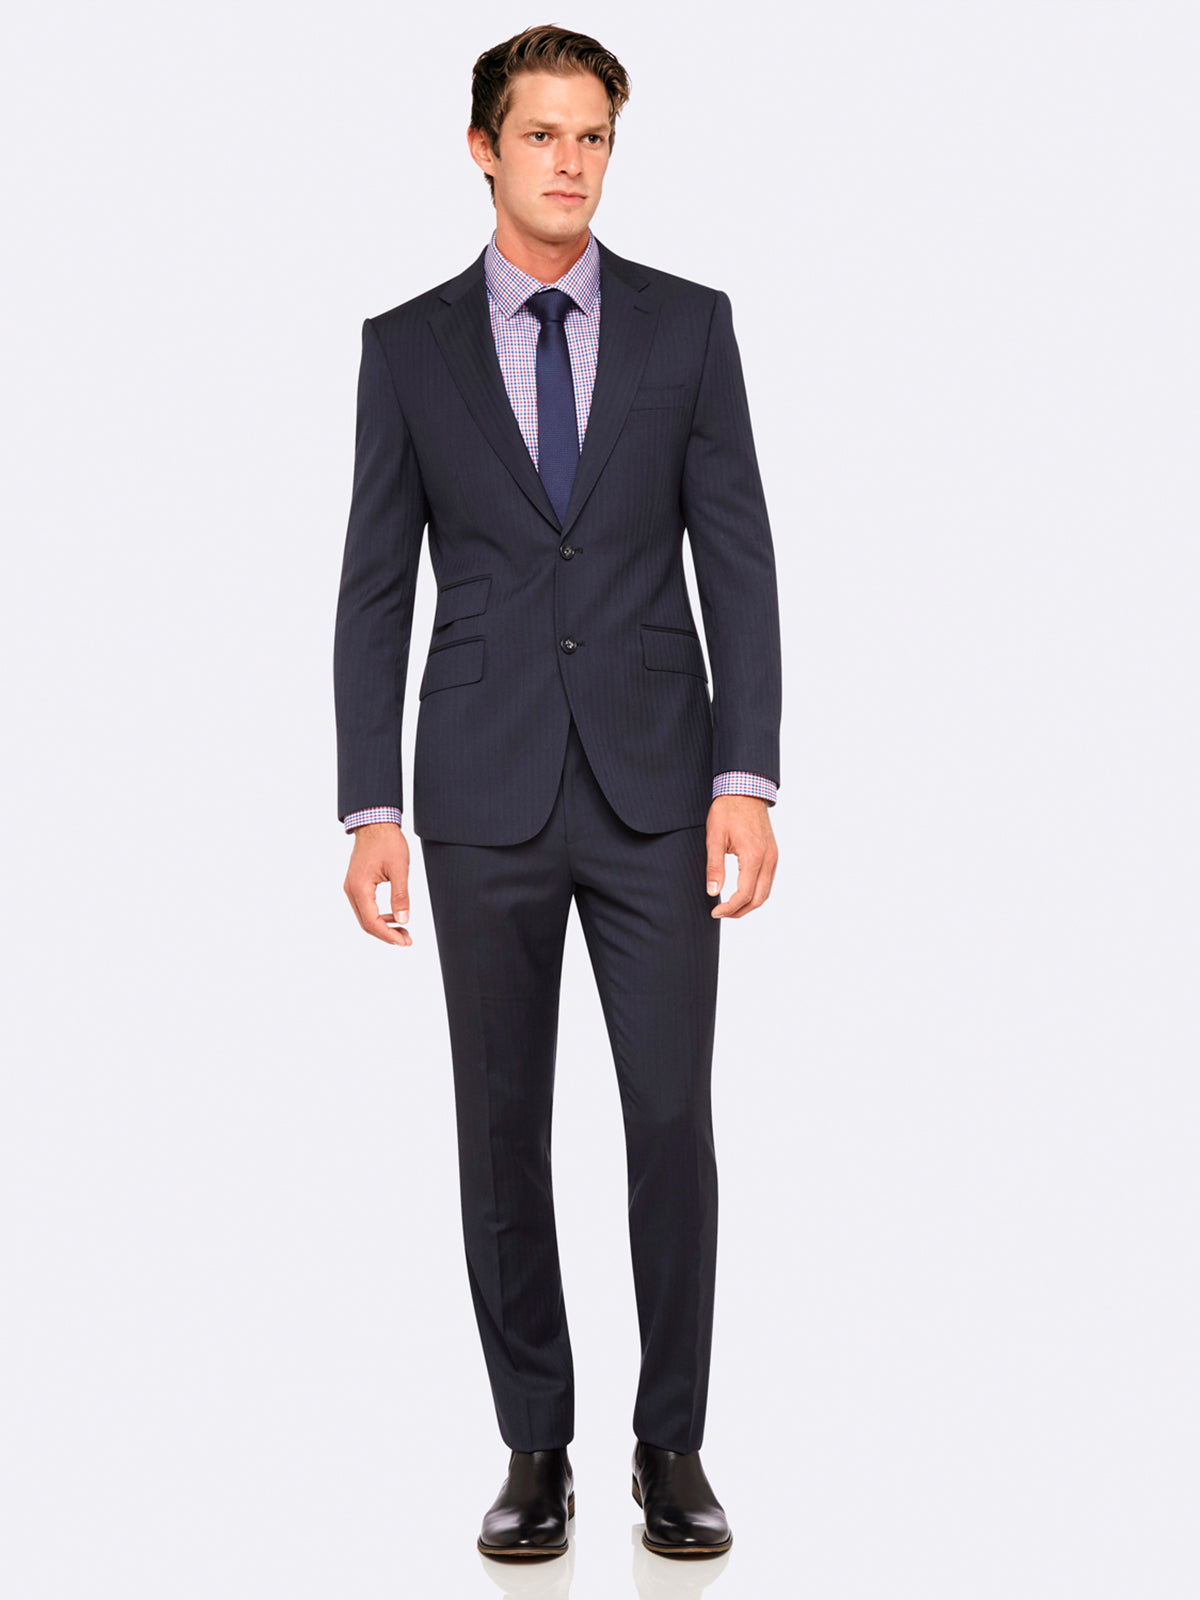 MARLOWE WOOL SUIT JACKET CHARCOAL